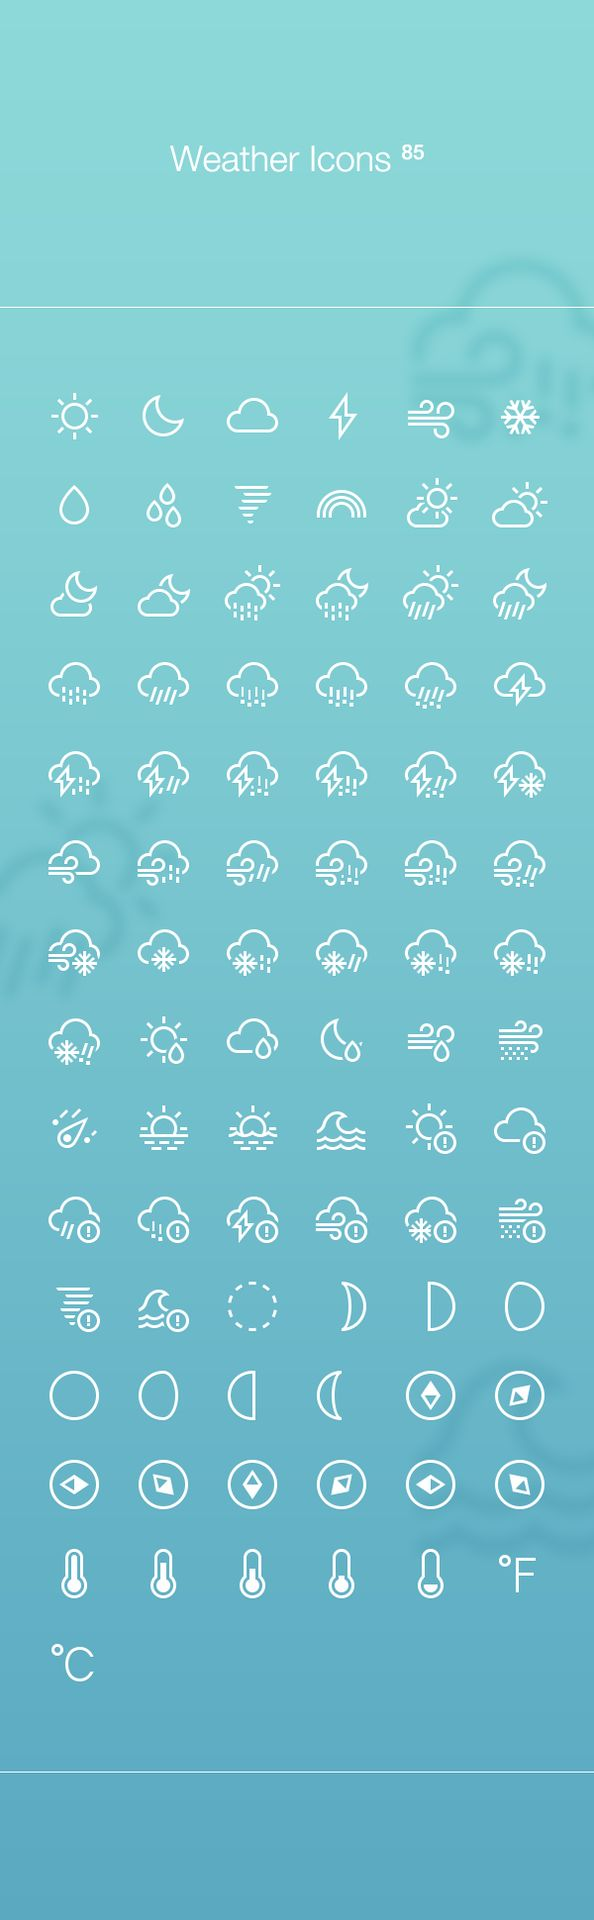 Web design freebies, Free Weather Icons